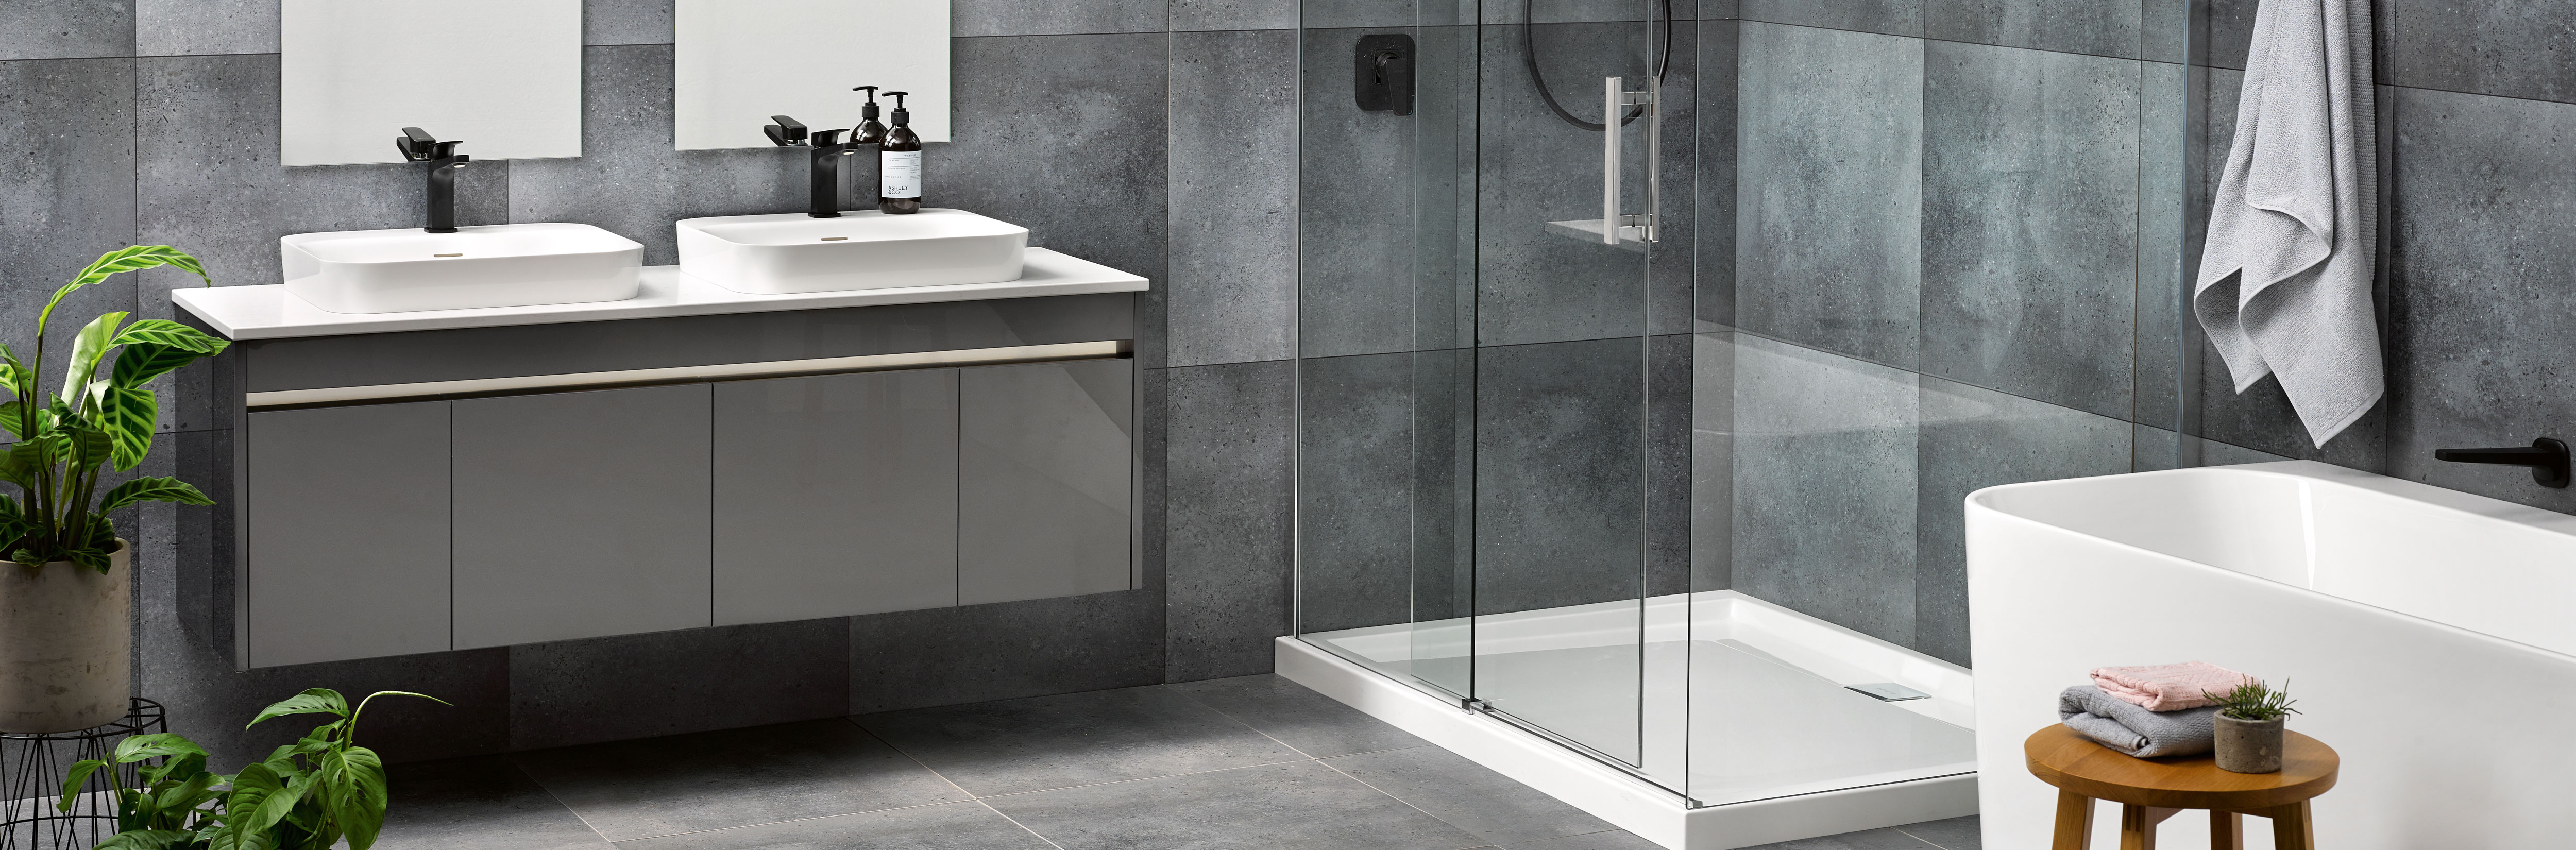 Bathroom Design New Zealand athena bathrooms | bathroomware designed for new zealand homes